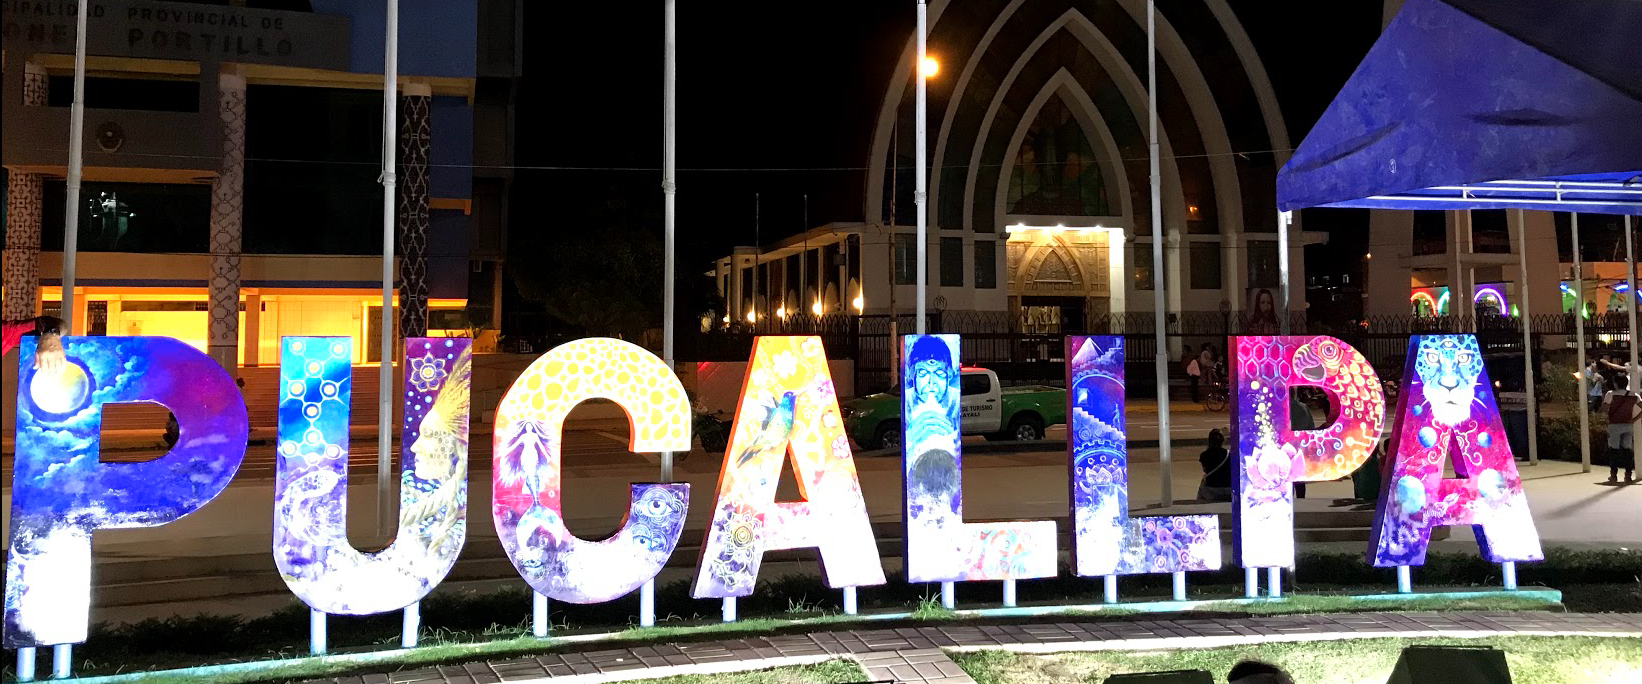 The city in which I stayed at. Here, this is take an the Pucallpa Plaza, the most urban region of the city. There's a center plaza with this sign and markets all around. There's also really good passion fruit ice cream here!